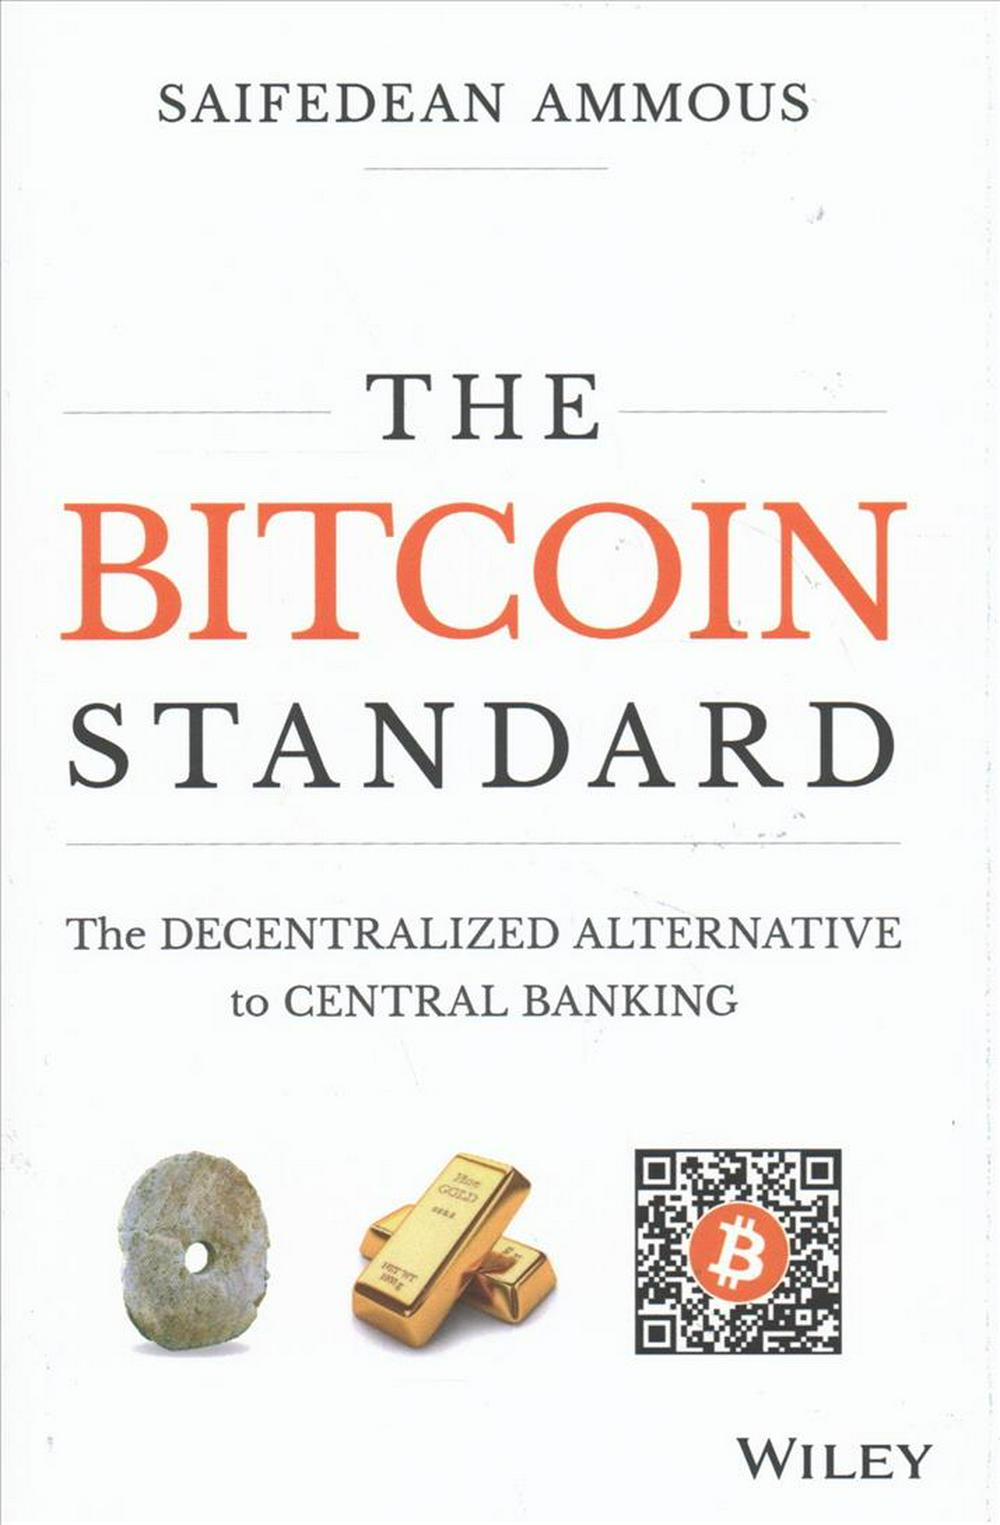 The Bitcoin StandardThe Decentralized Alternative to Central Banking